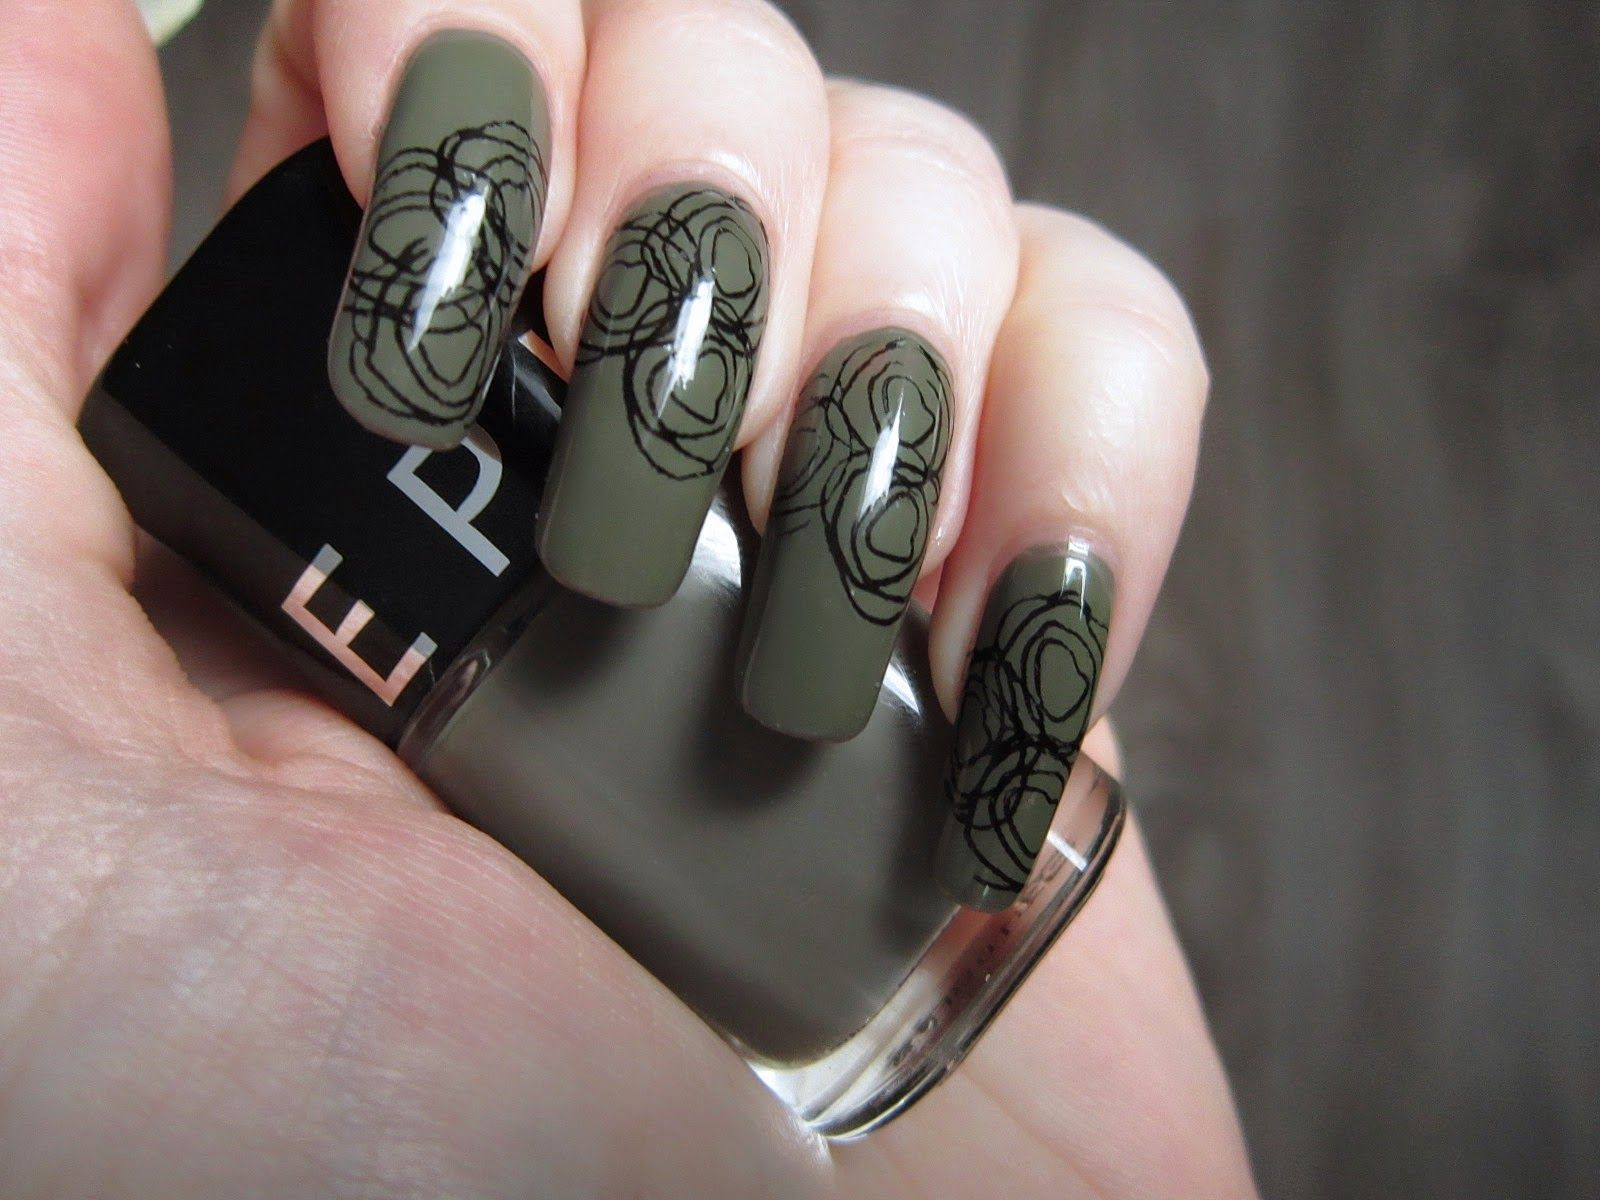 Sephora Game Over Nail Polish Stamping Stamp Plate Qa44 From Ebay